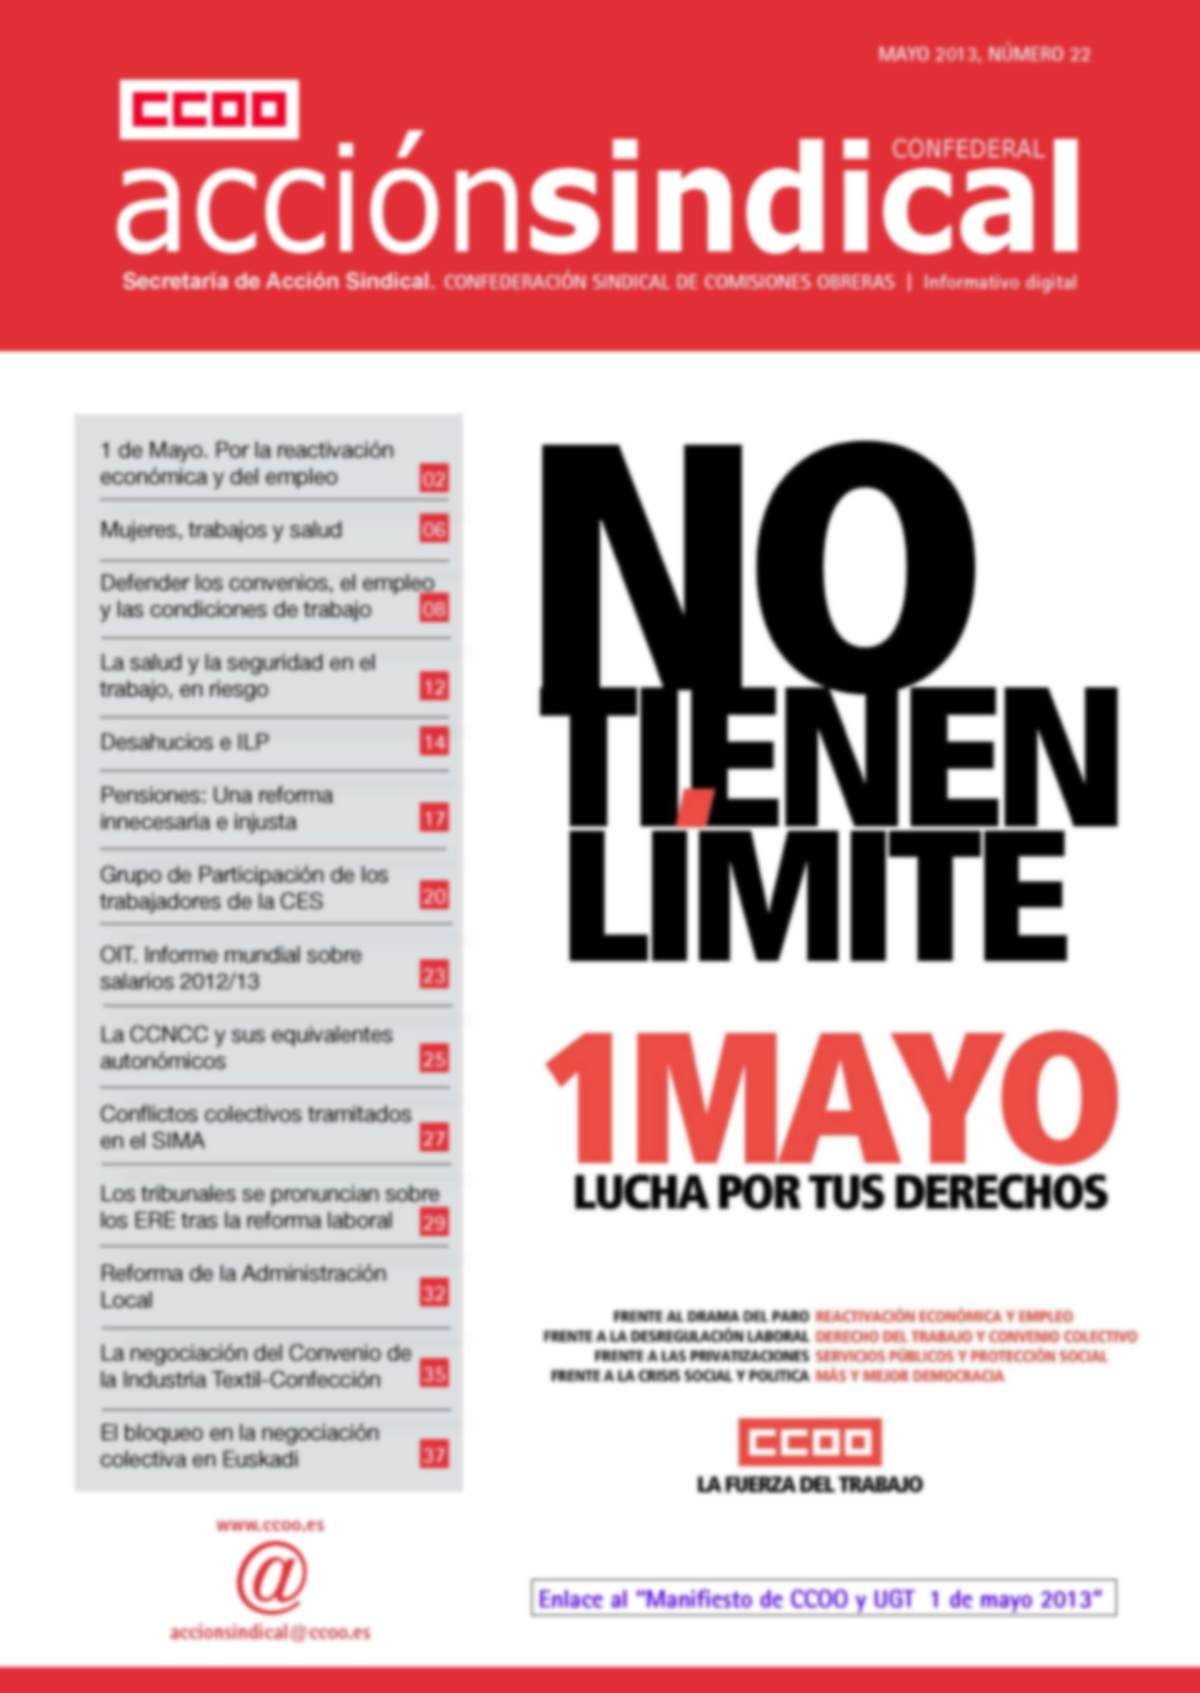 Informativo Digital Acción Sindical Confederal, nº 22